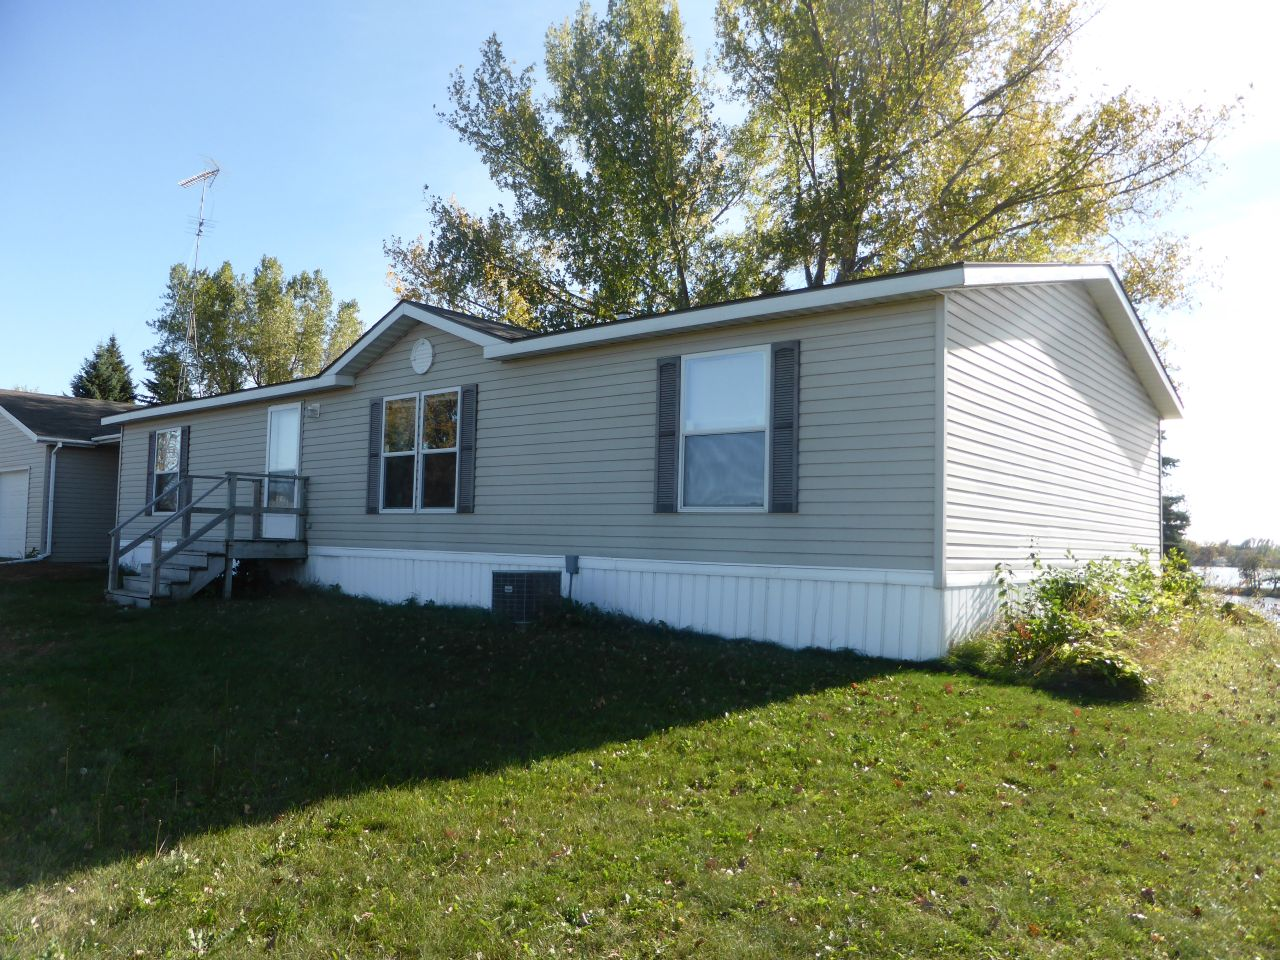 29681 Pelican Scenic View Rd, Ashby, Minnesota 56309